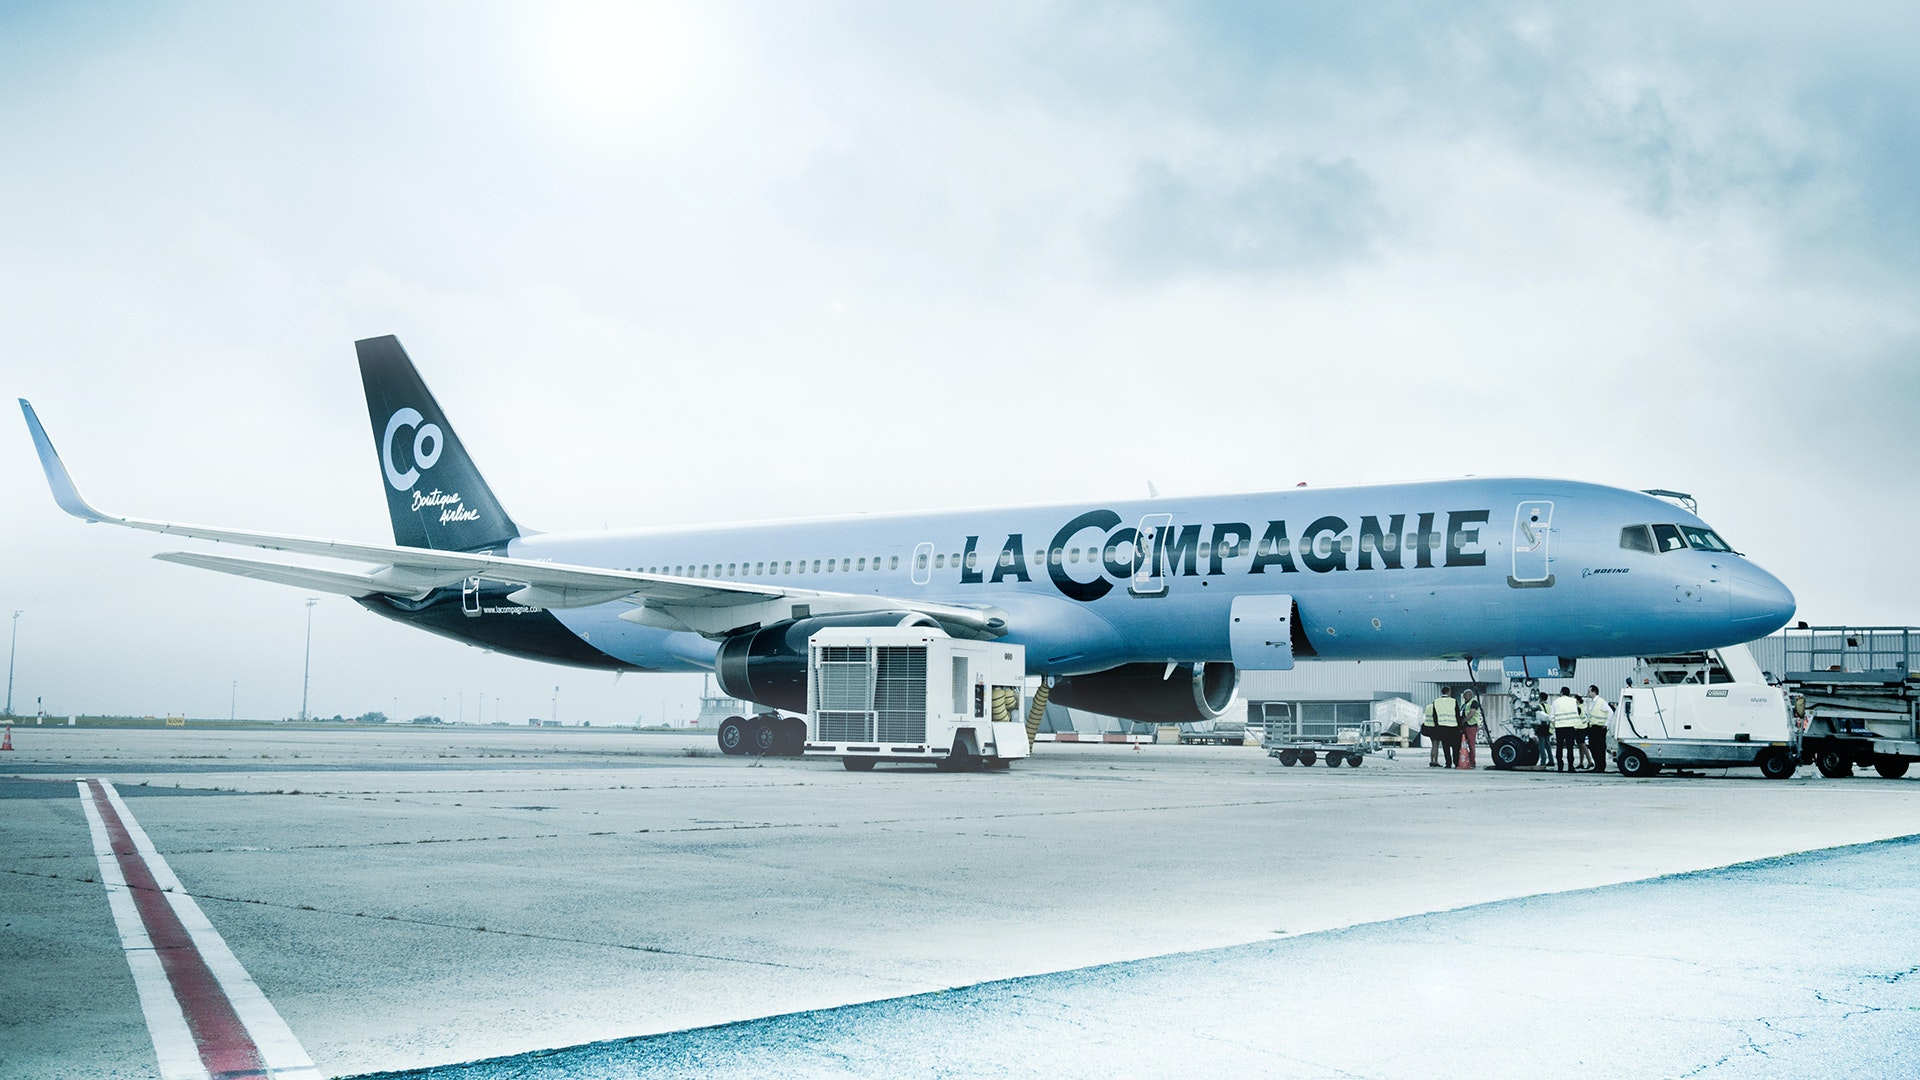 Blue airplane, Blue Friday sale. Get it?